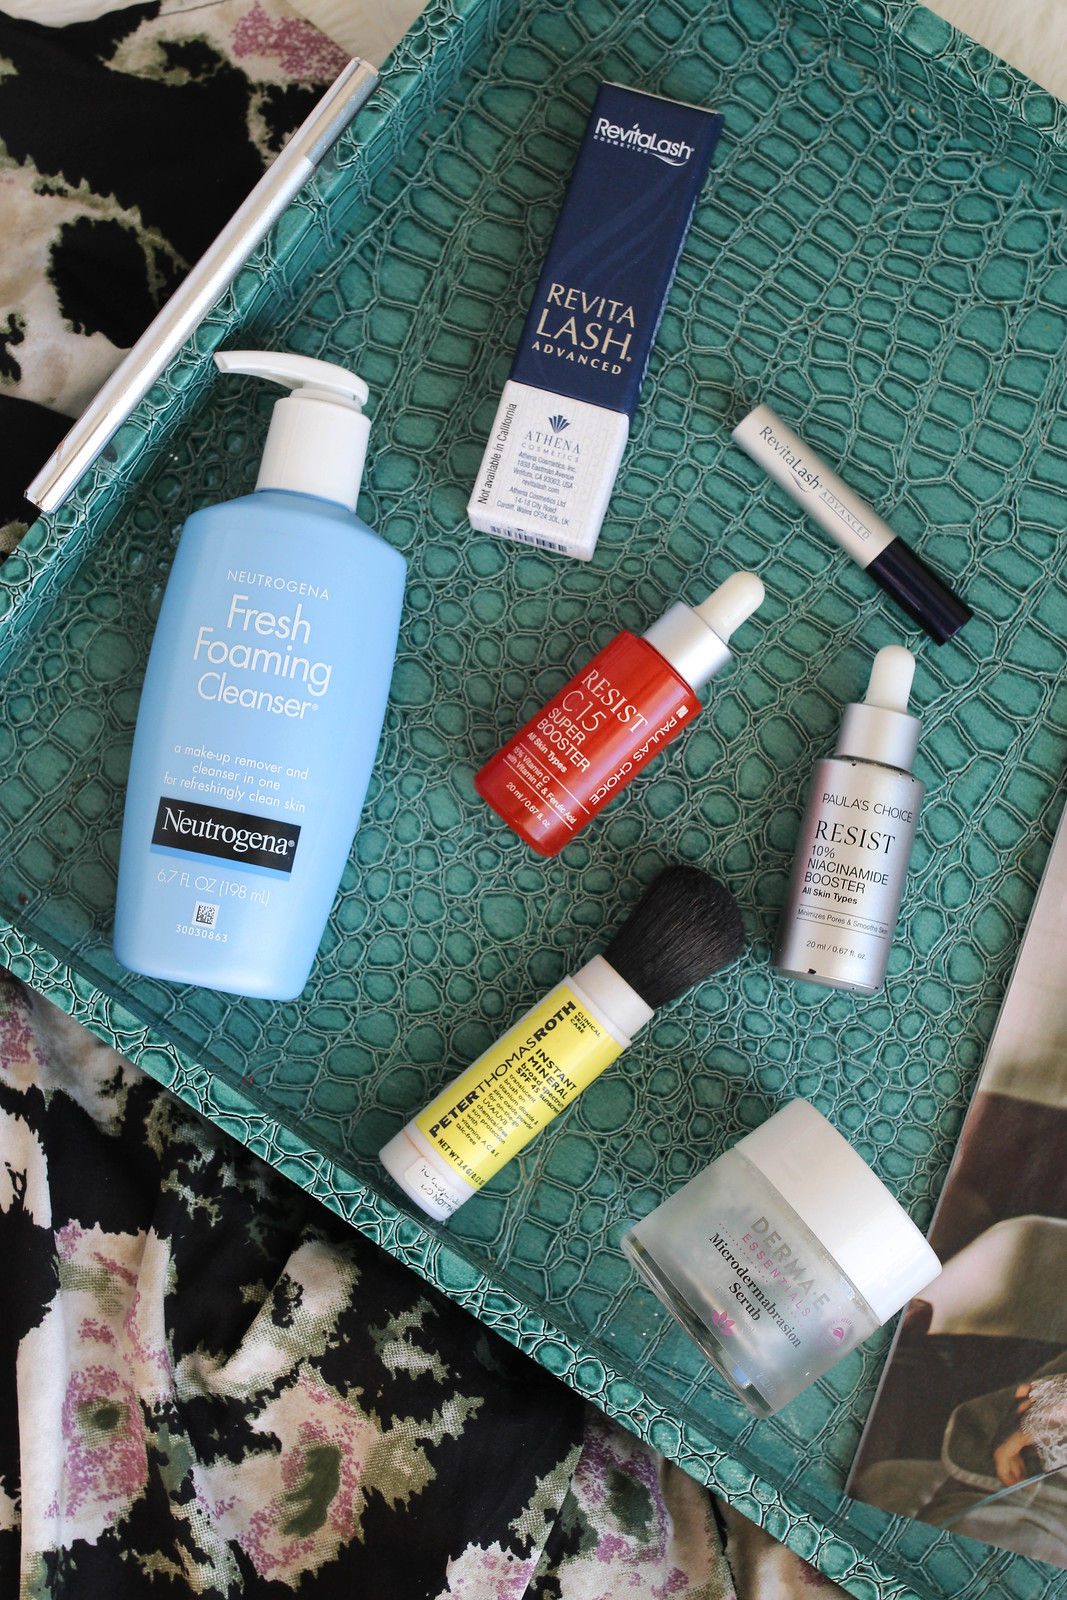 Neutrogena Fresh Foaming Cleanser Revitalash Paula's Choice Boosters Peter Thomas Roth Mineral Sunscreen Dermae Microdermabrasion Scrub My Favorite Beauty Products of All Time Living After Midnite Jackie Giardina Beauty Blogger